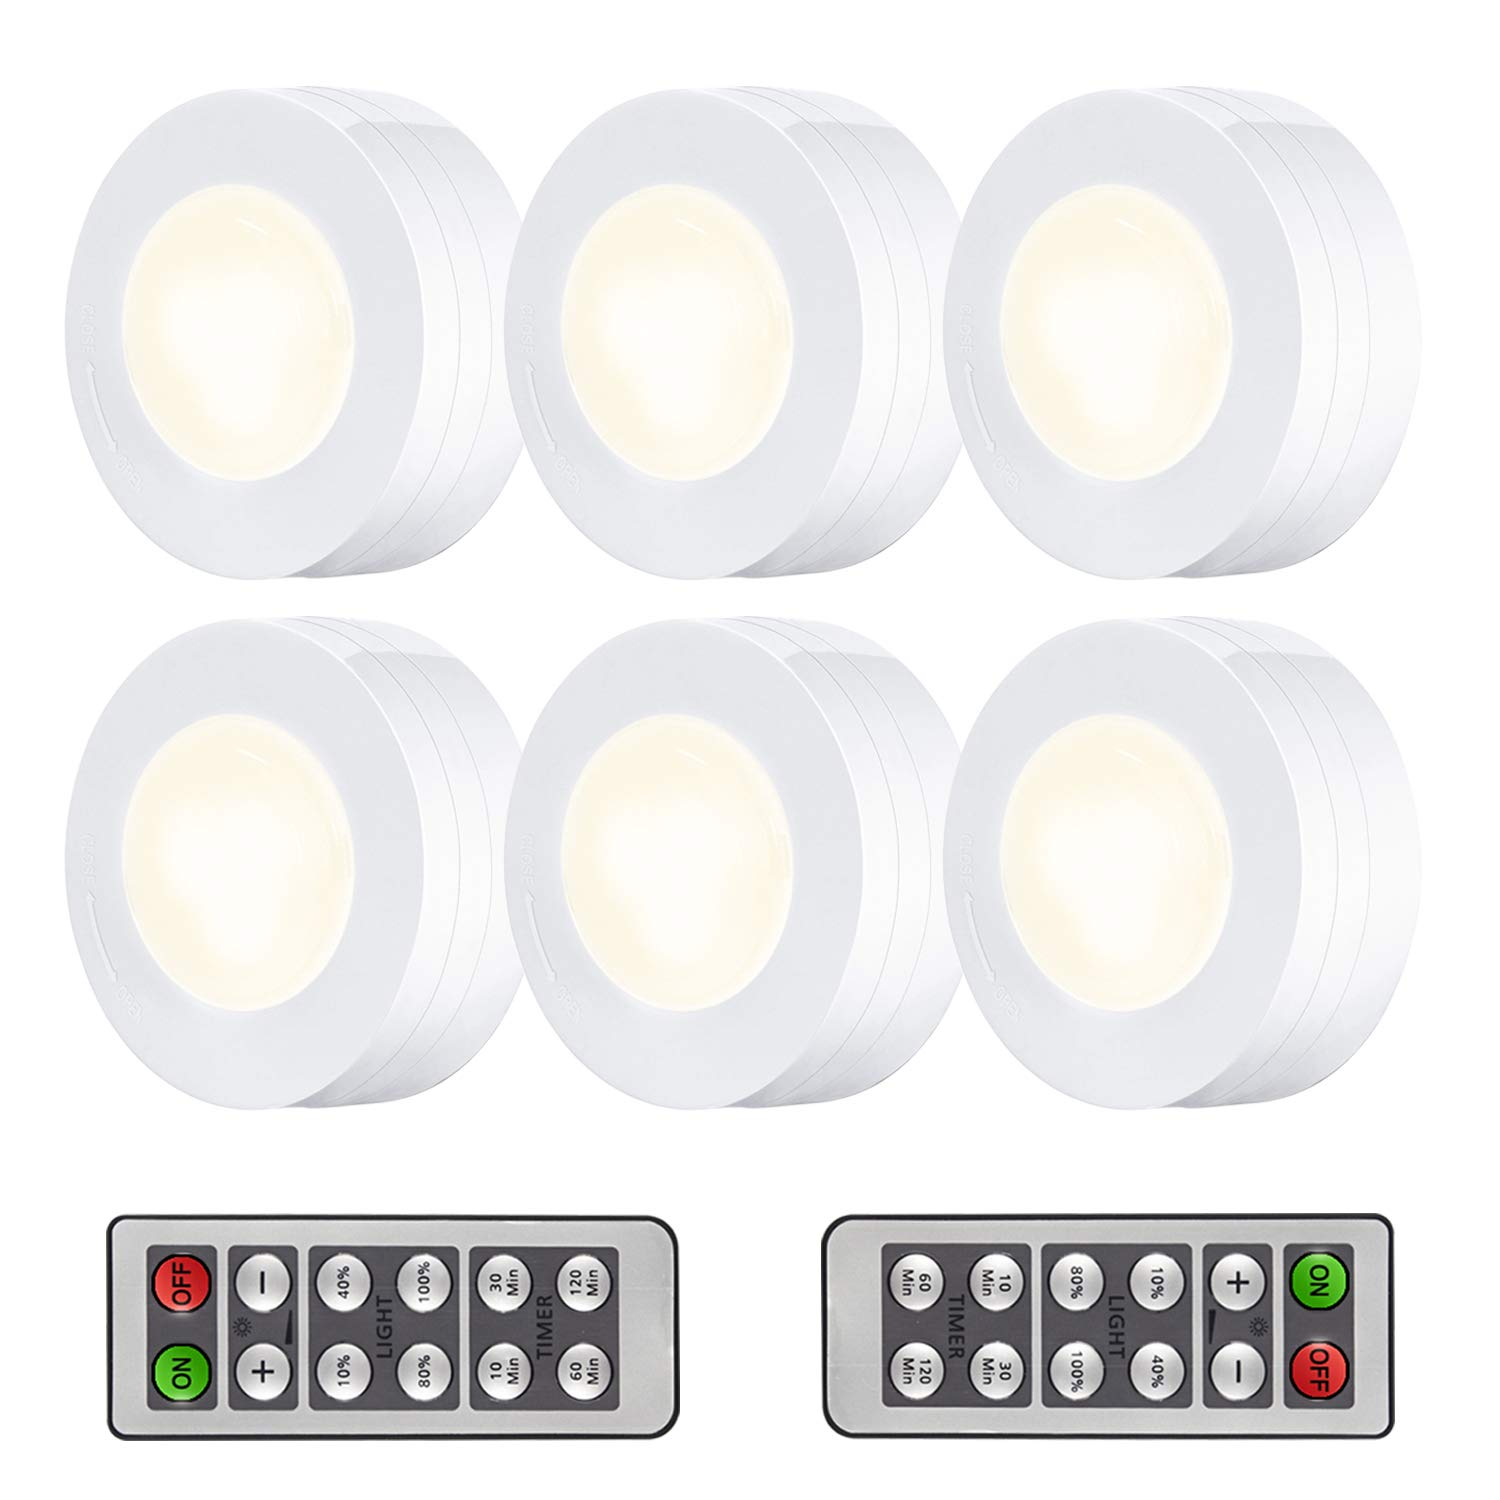 Arvidsson LED Under Cabinet Lighting, Wireless LED Puck Lights with Remote, Closet Light Battery Operated, Dimmable Under Counter Lights for Kitchen, Natural White - 6 Pack